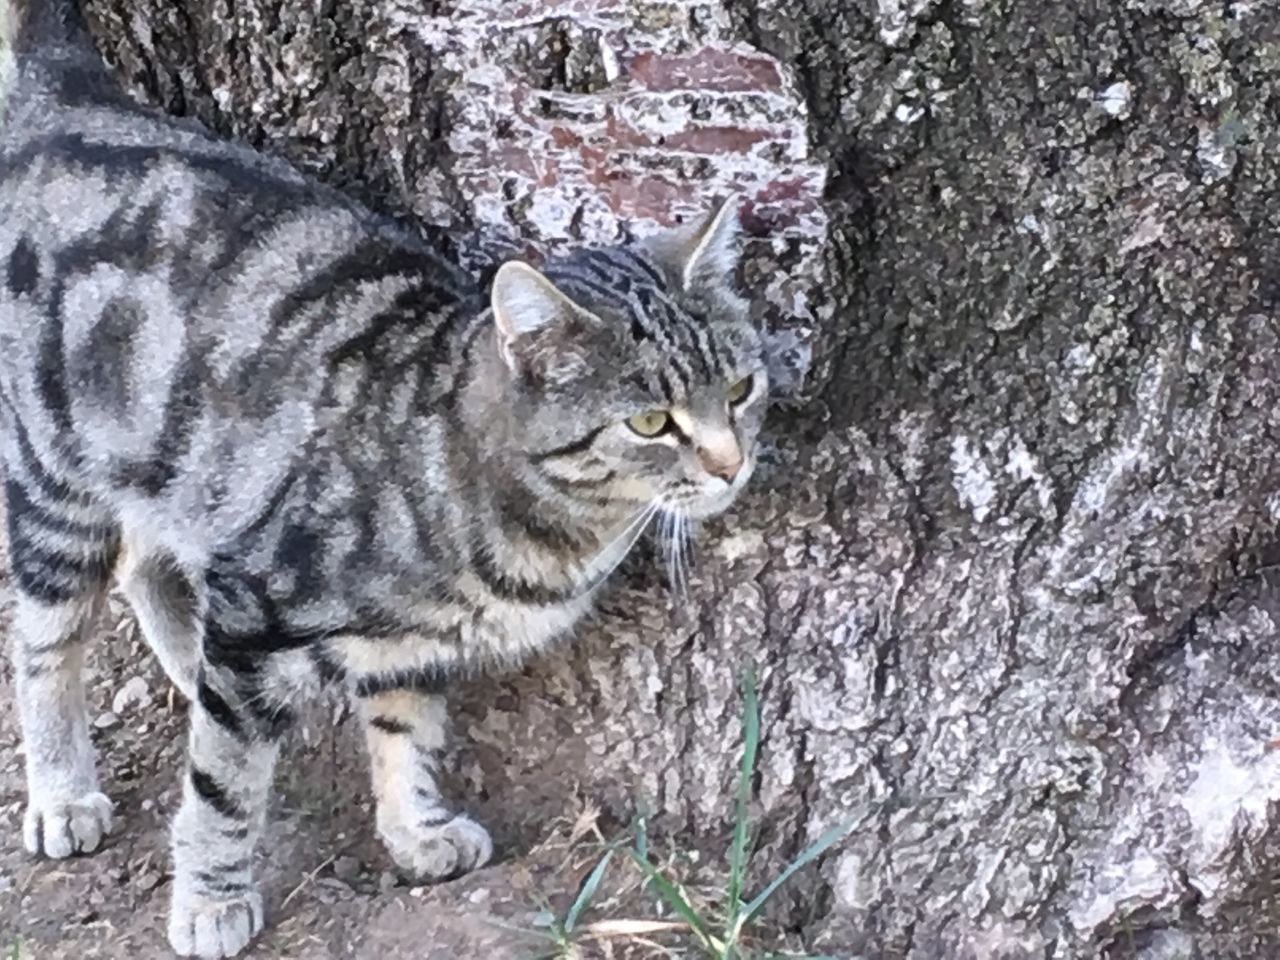 Fur And Bark Textures And Surfaces One Animal Cat Tree Outdoors